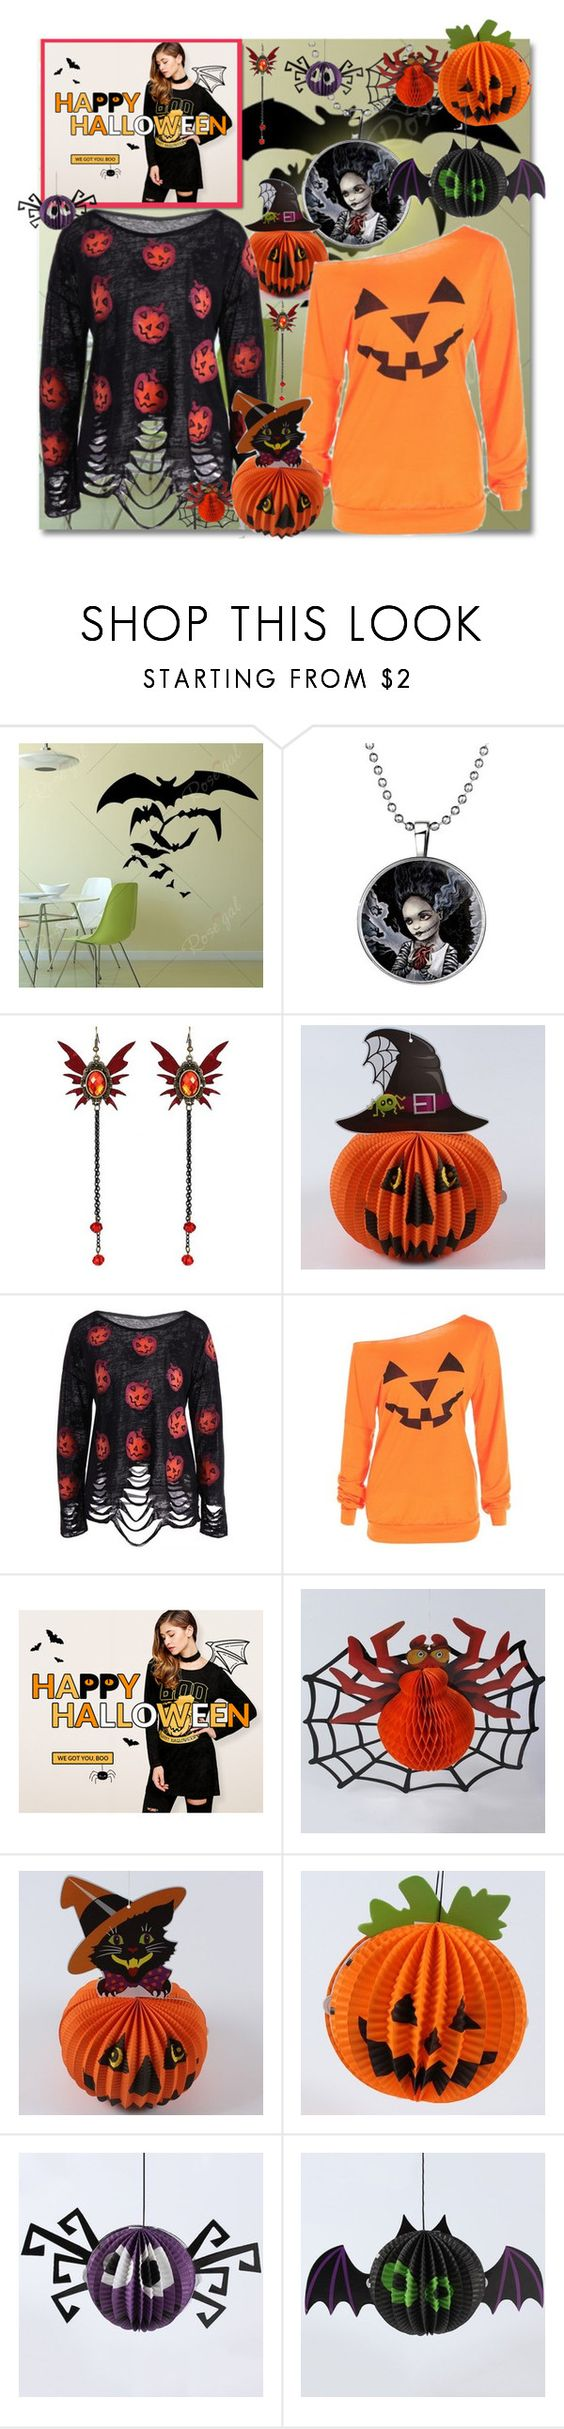 """""""Rosegal Halloween giveaway...."""" by andrea2andare ❤ liked on Polyvore featuring Halloween and giveaway"""